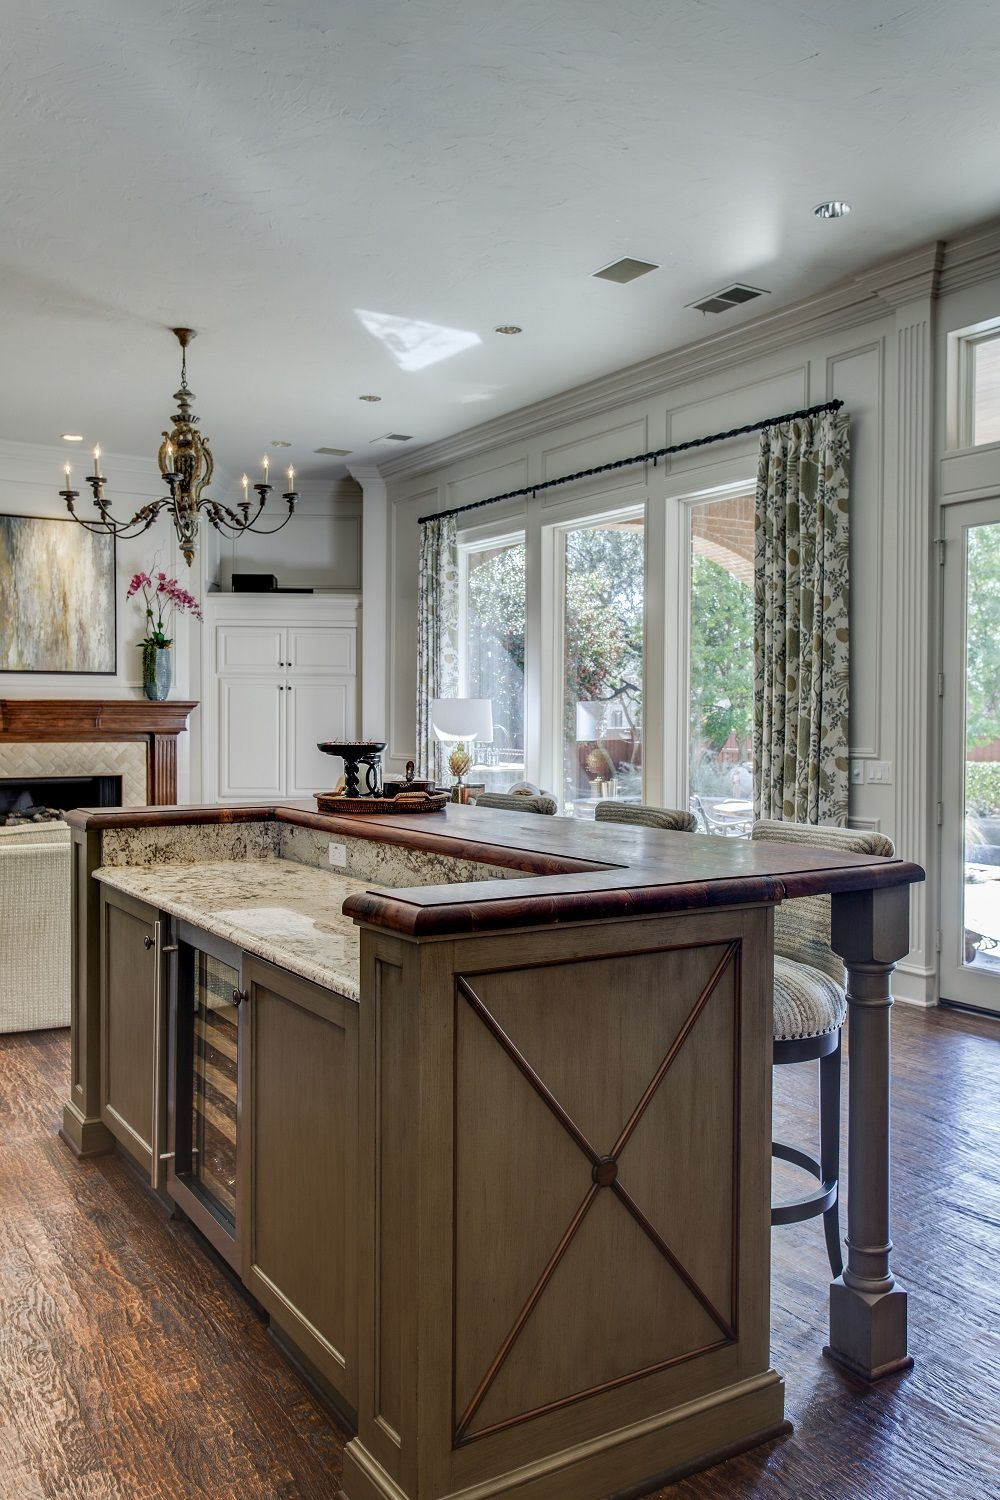 Kitchen Design Dallas Tx Awesome In Home Bars  Bar Cabinetry Design And Inspiration  Kitchen Design Ideas